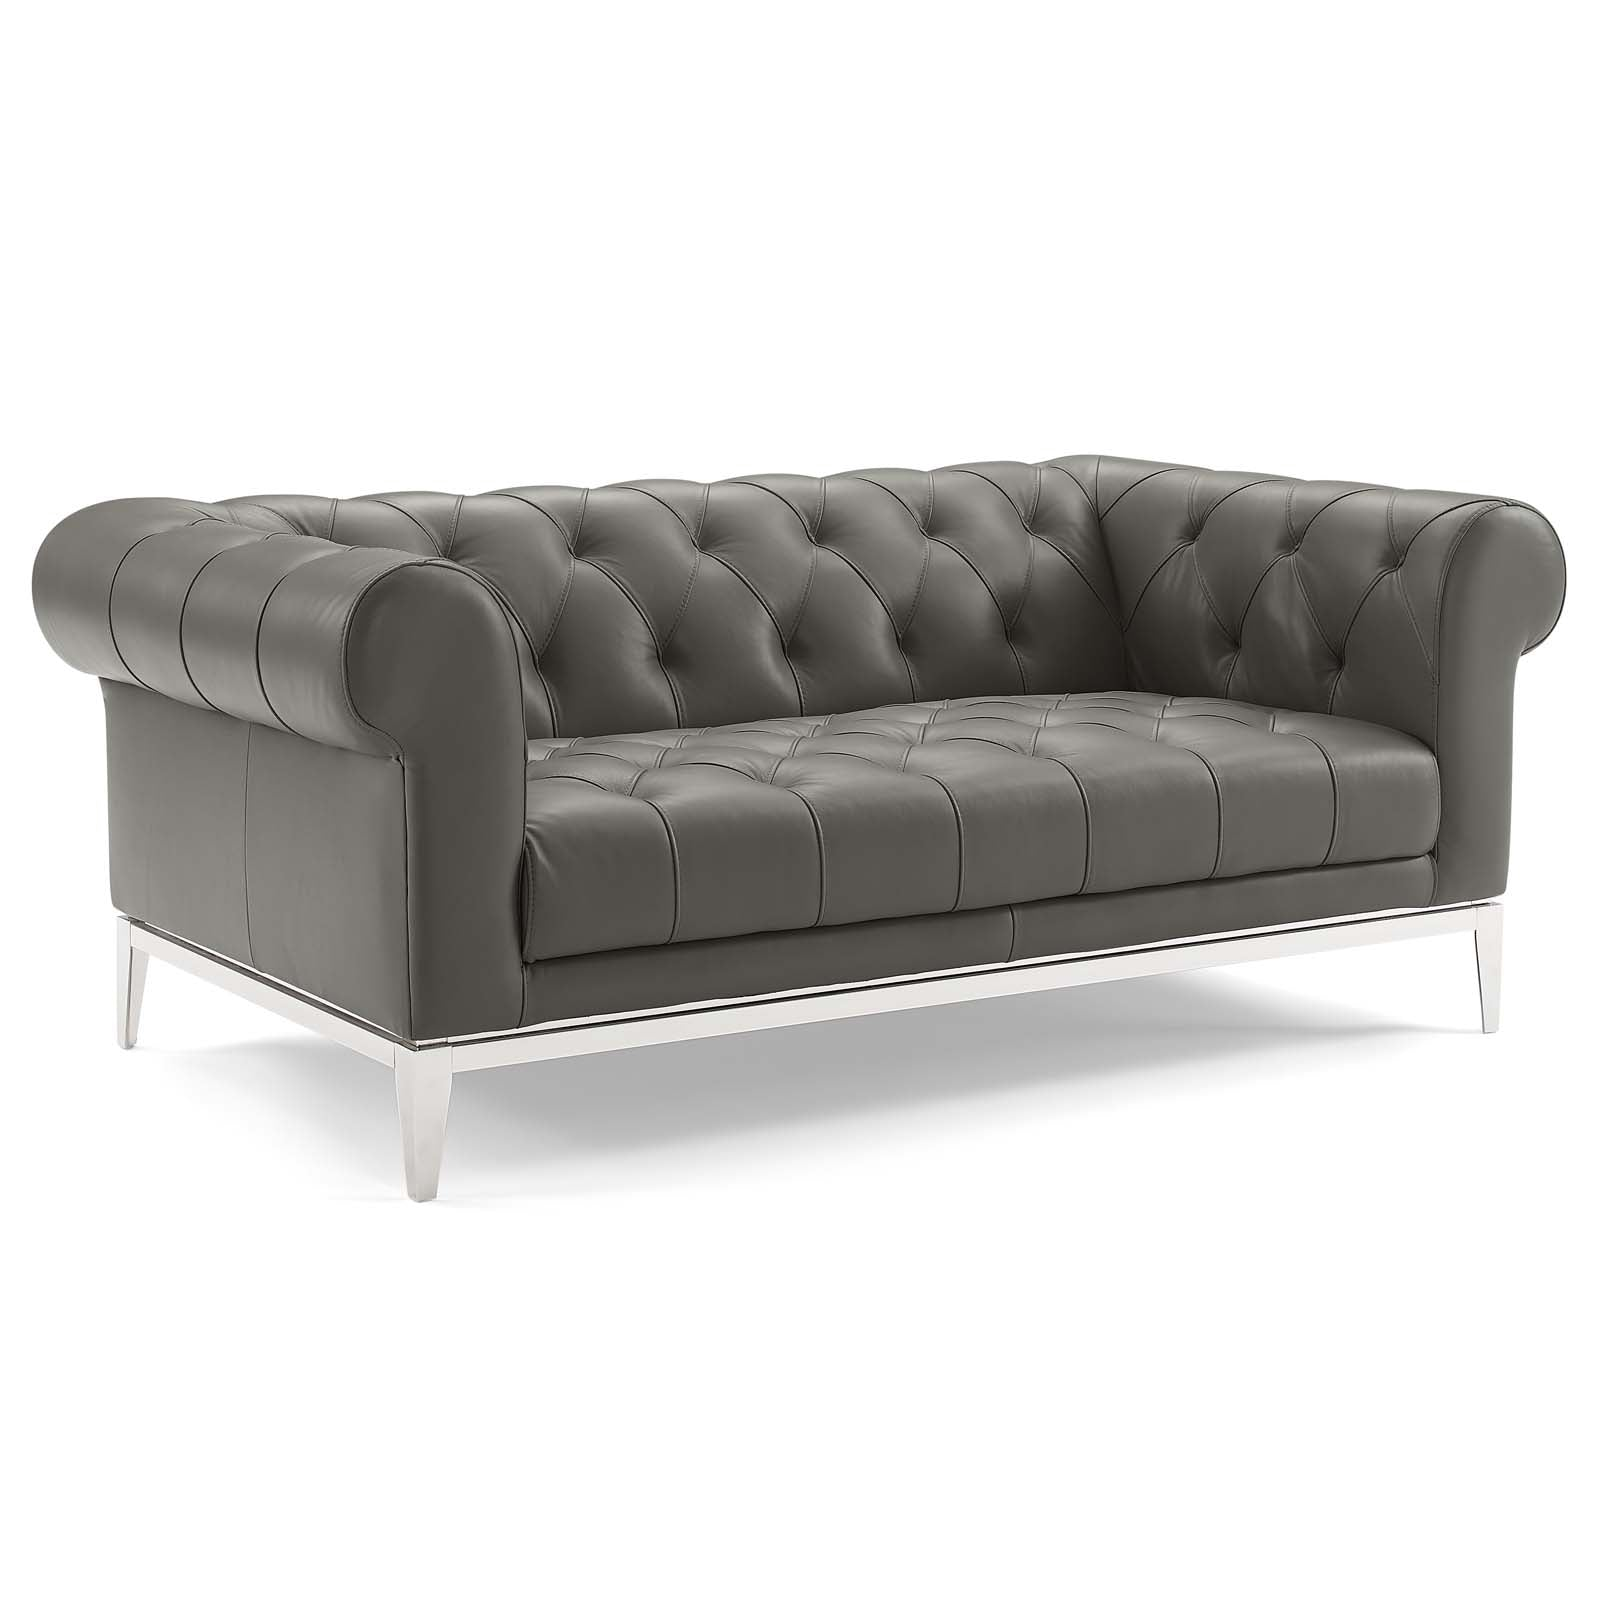 Idyll Tufted Button Upholstered Leather Chesterfield Loveseat